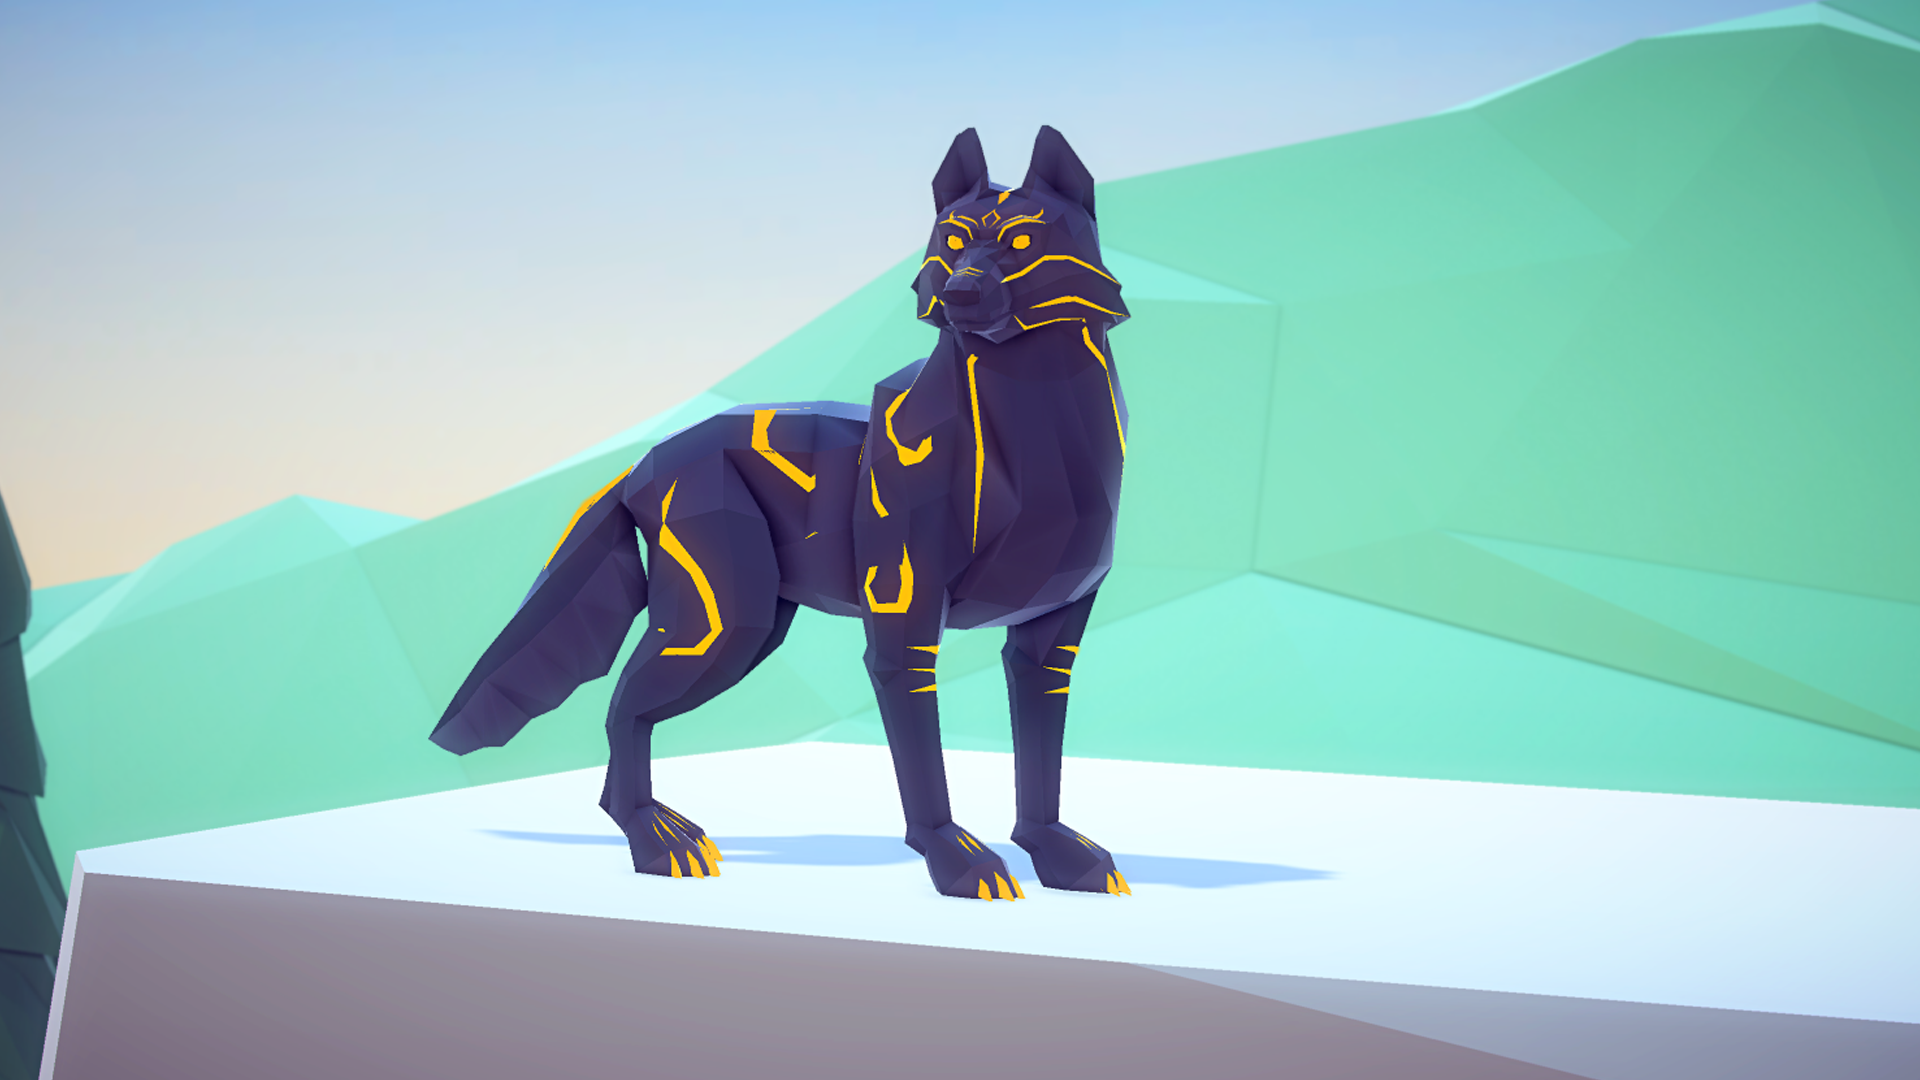 Poly Art Wolf by MalberS Animations in Characters - UE4